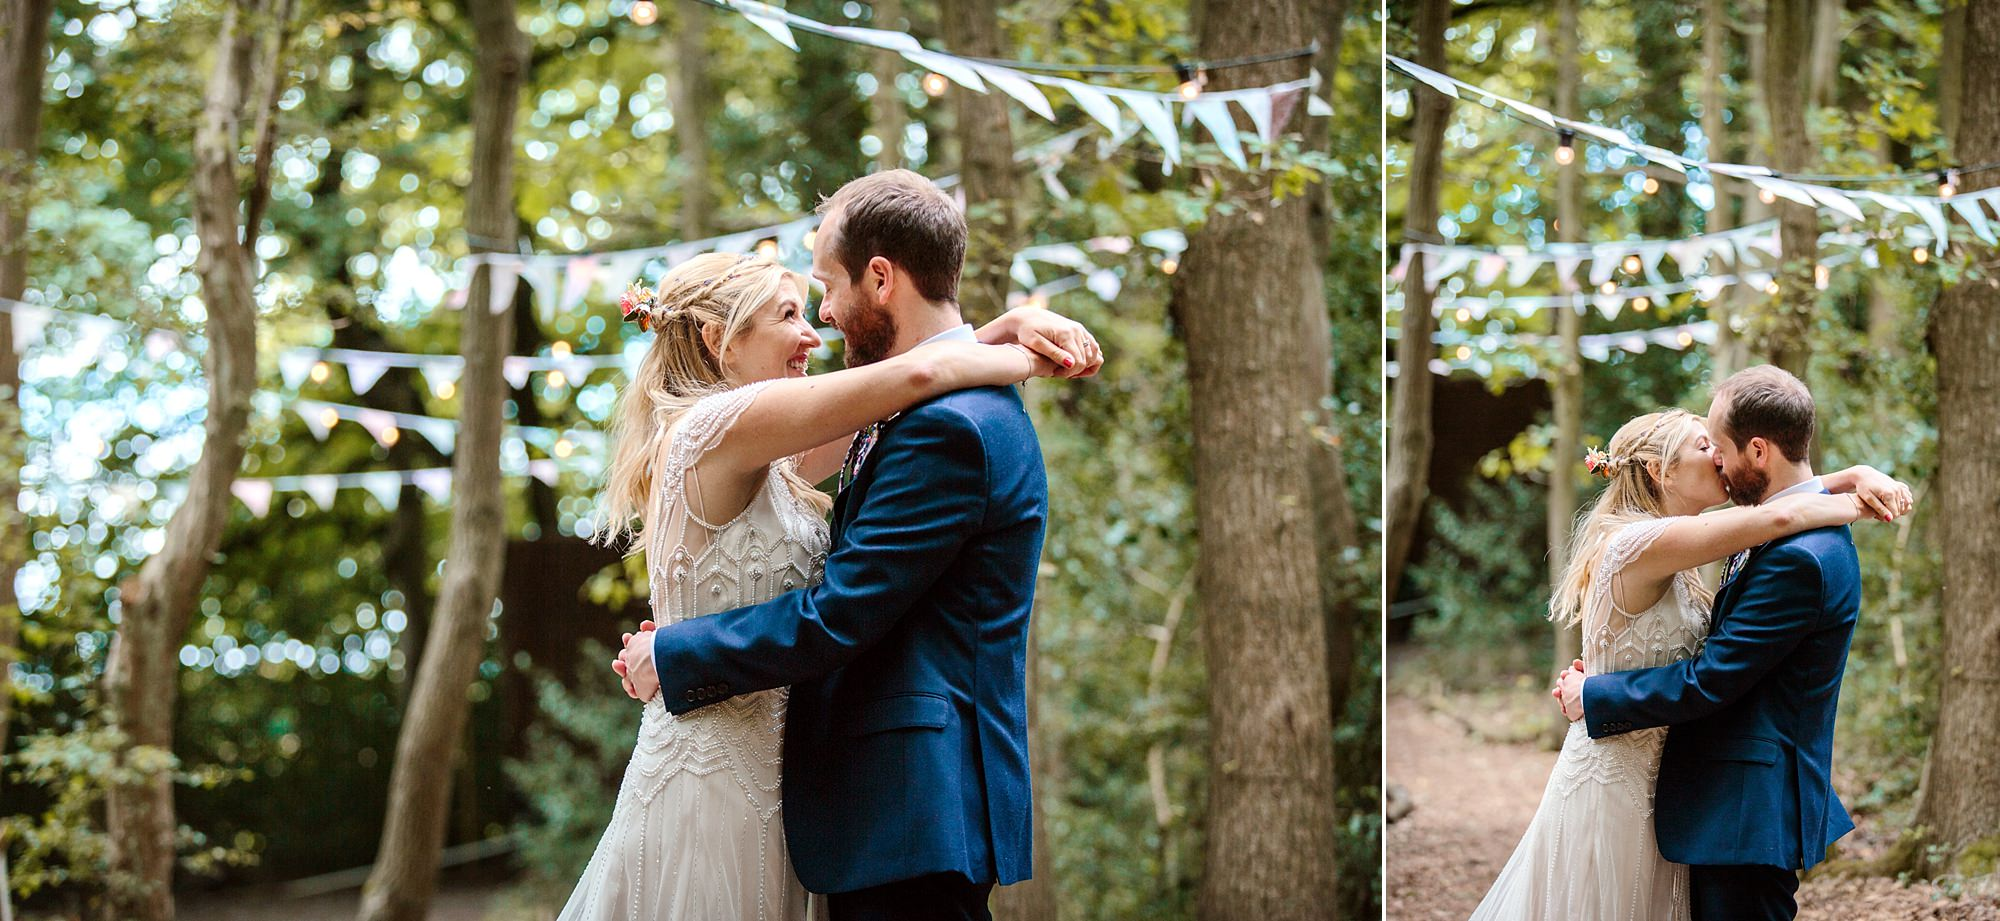 Woodland Weddings Tring bride and groom in woodland